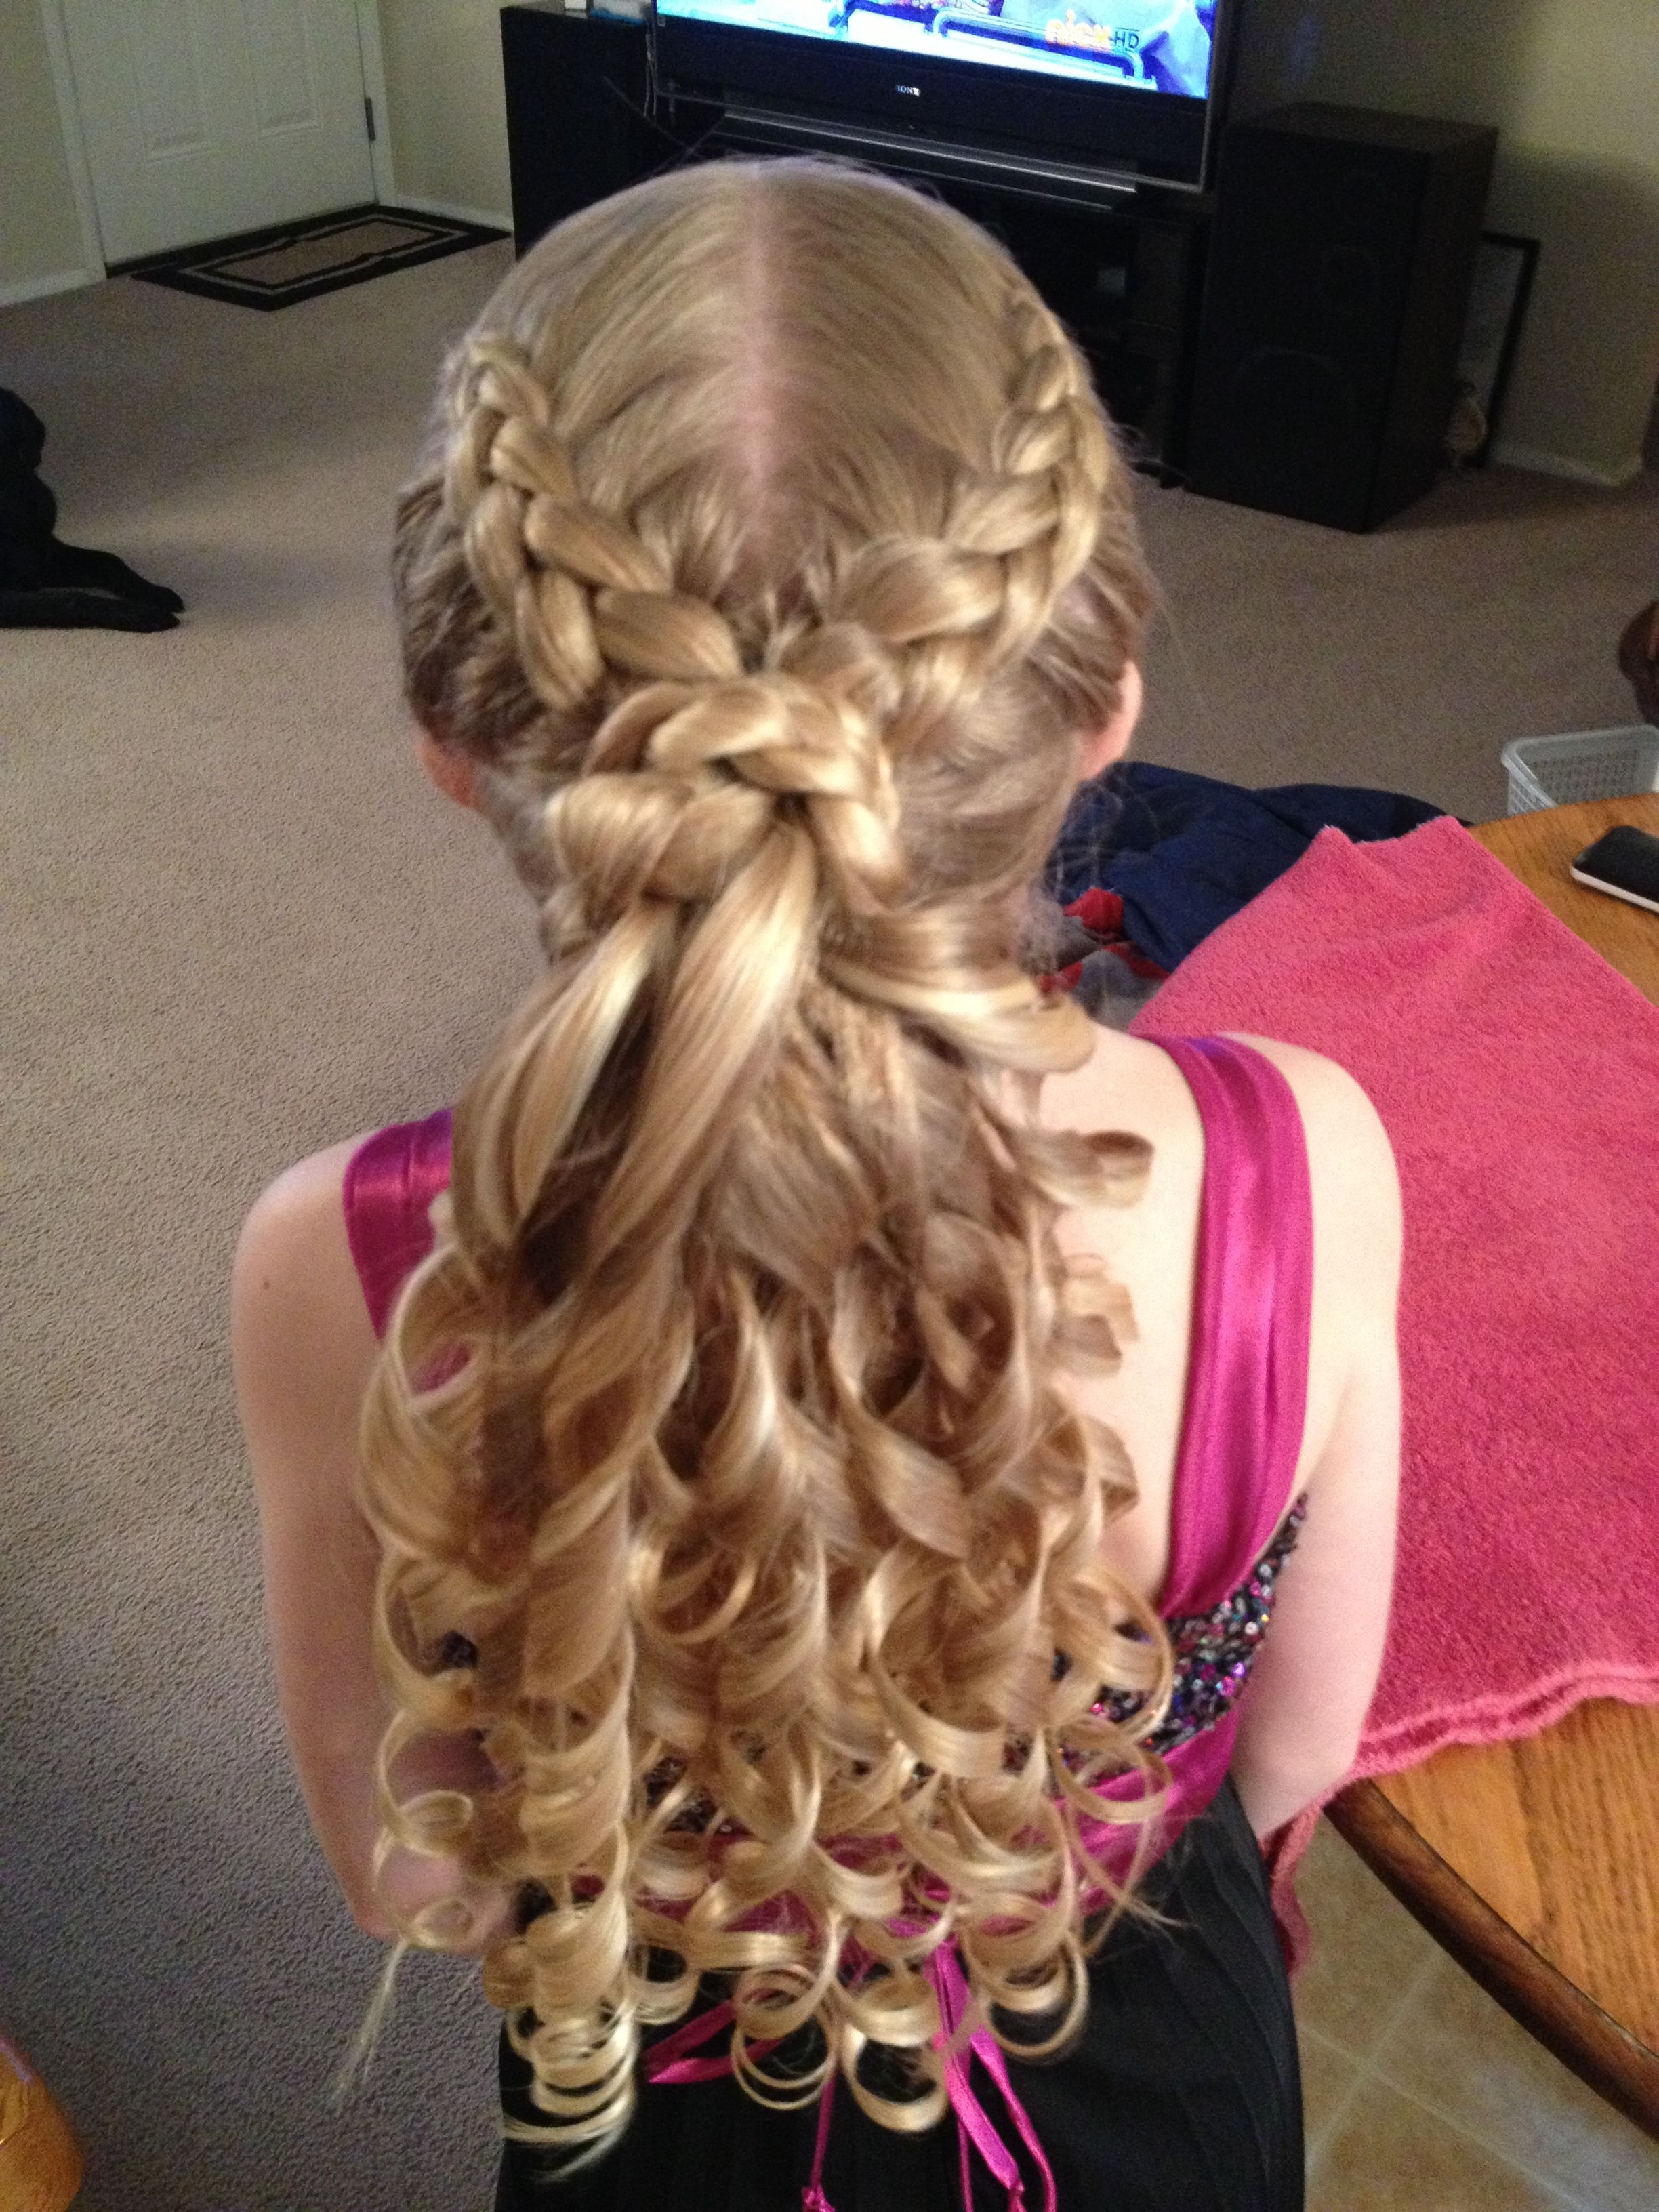 Fatherdaughter dance hair three dutch braids meeting in the middle